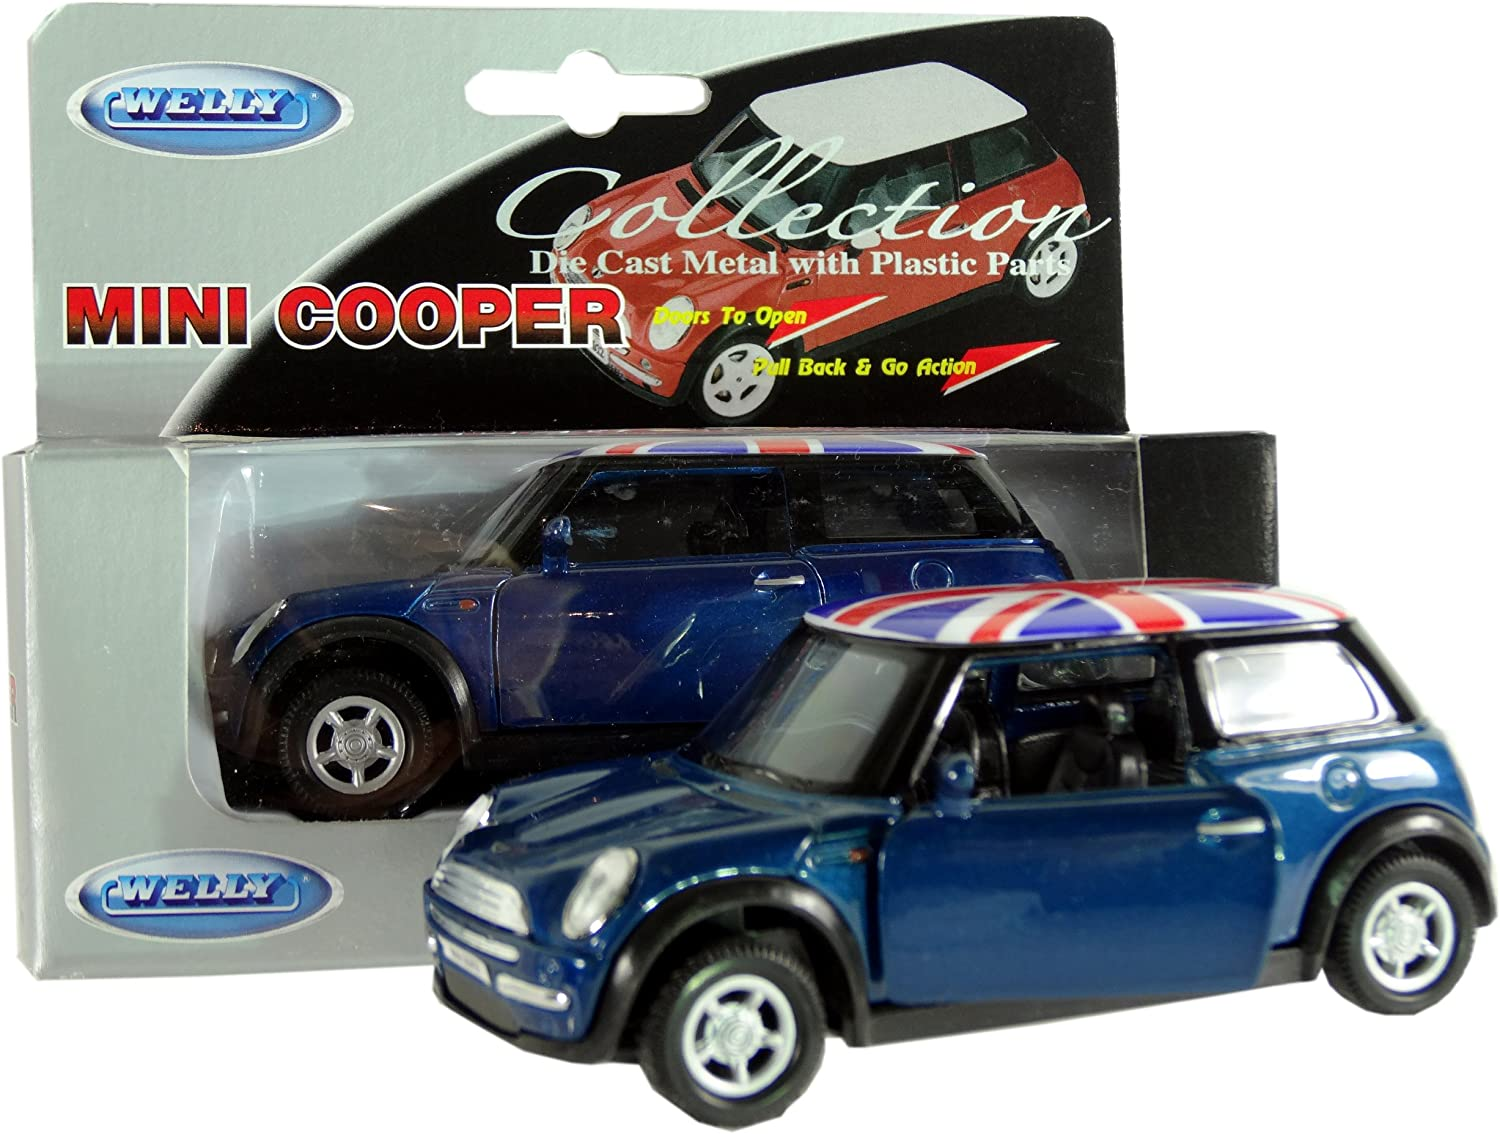 New Style Mini Cooper Model Made of Die Cast Metal and Plastic Parts, Pull Ba...